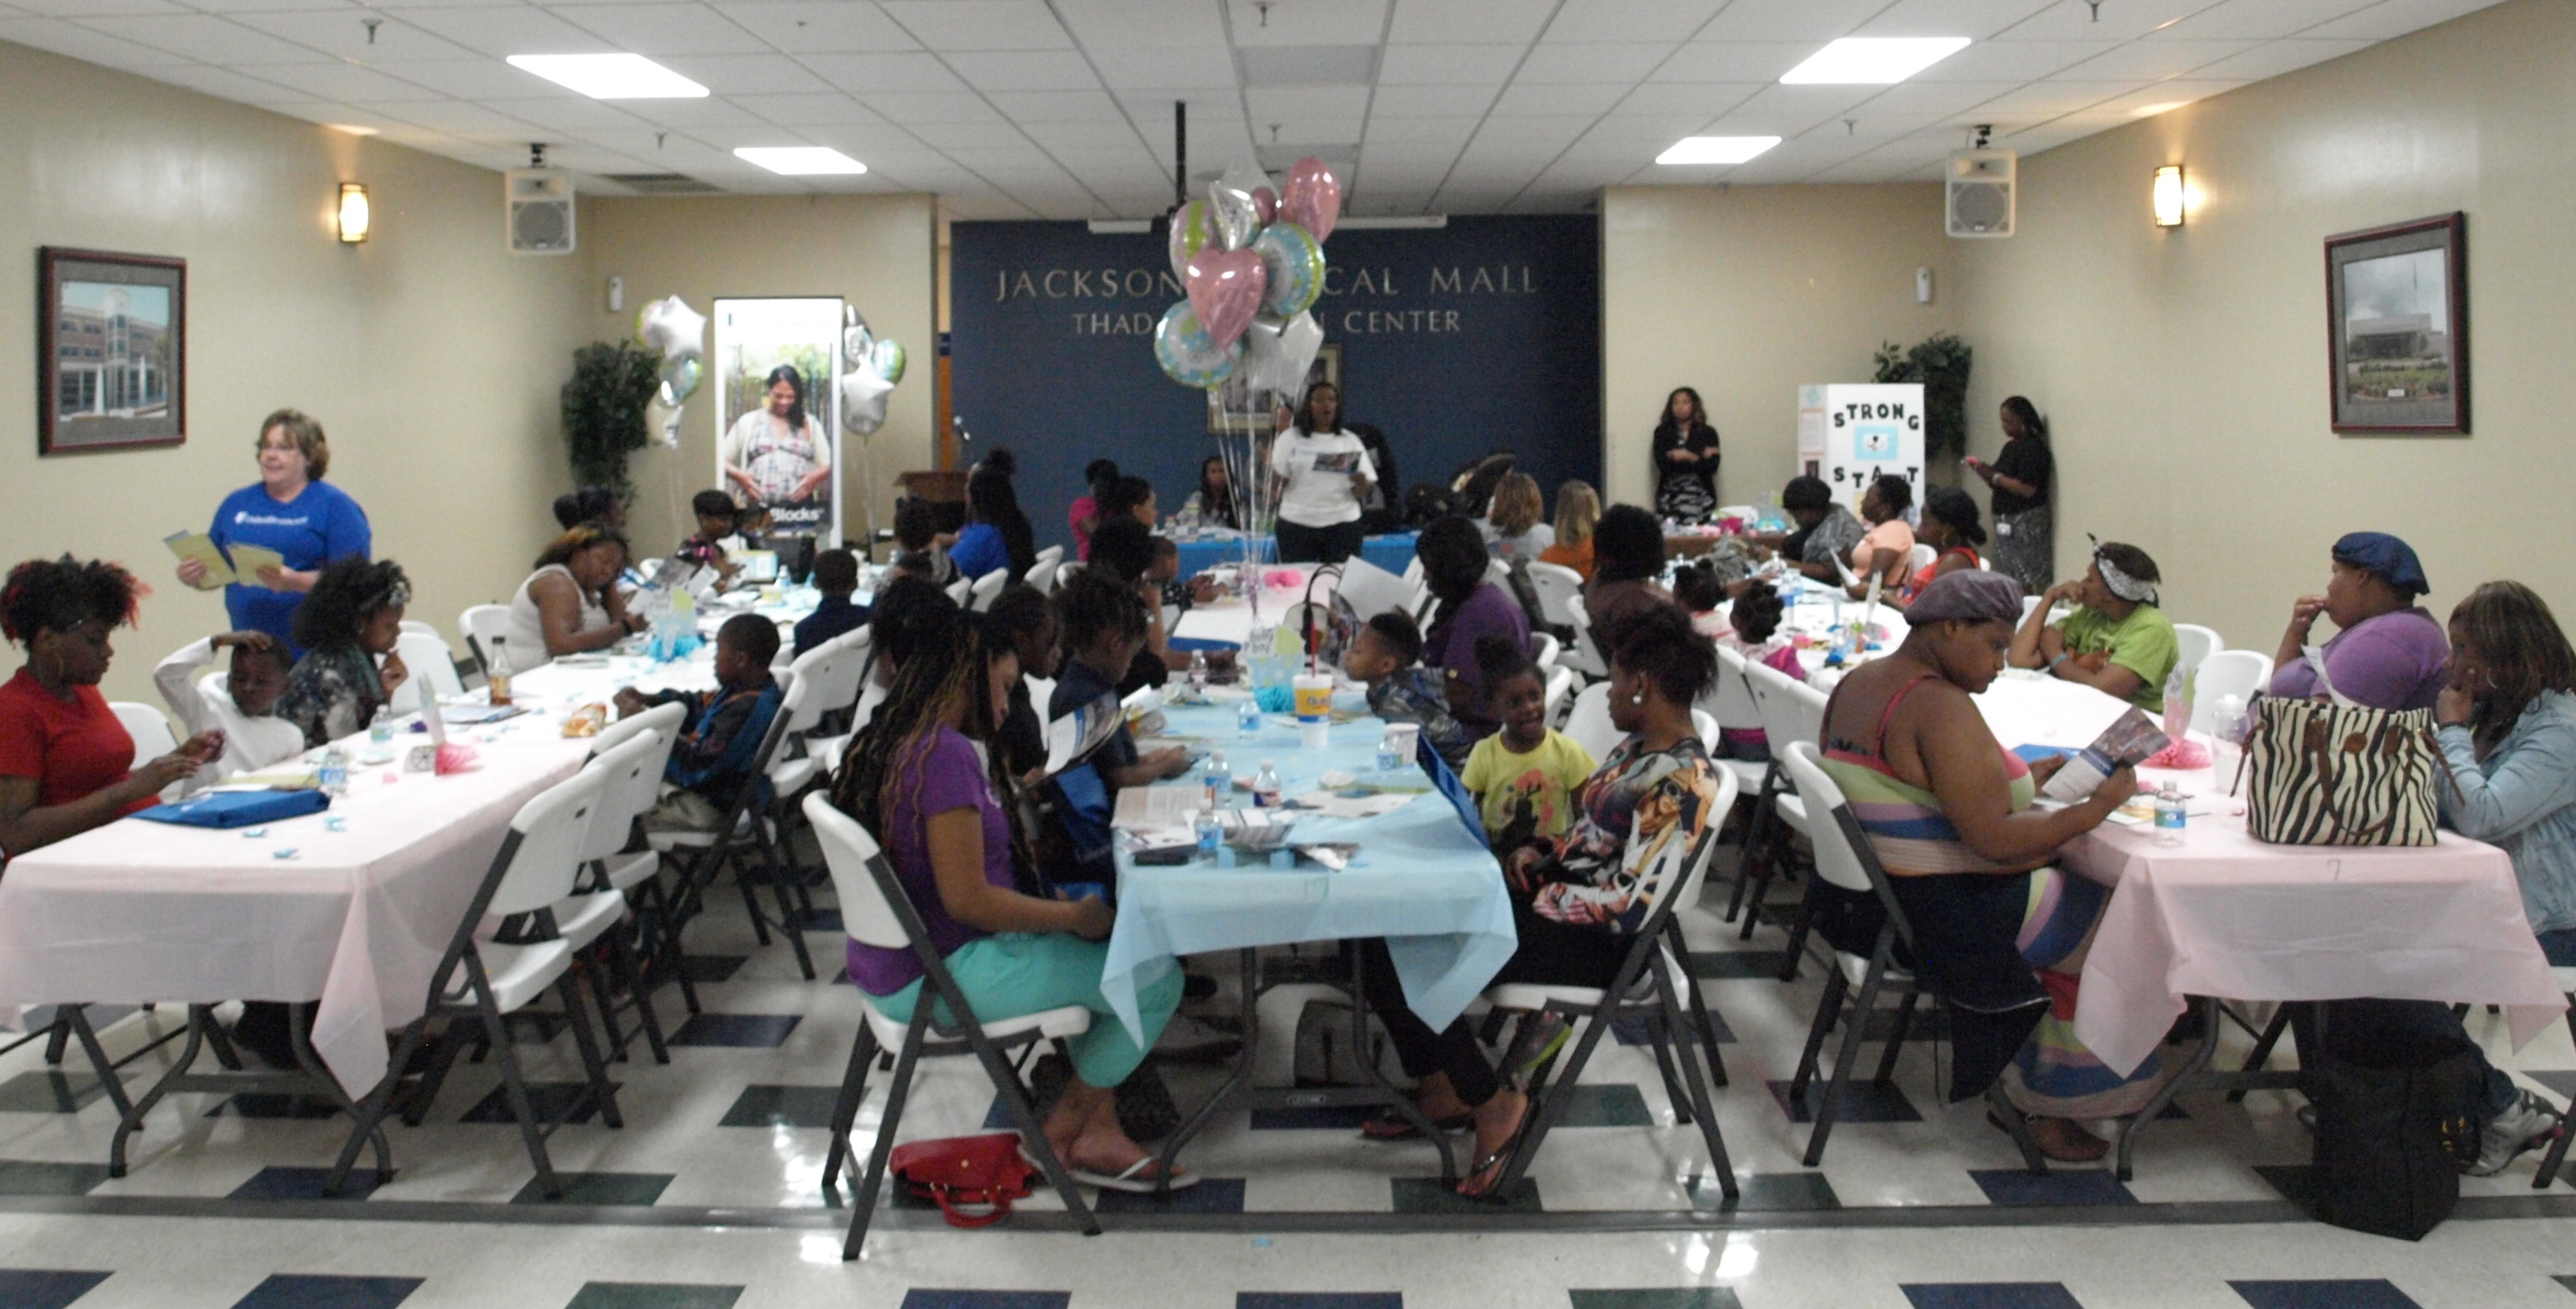 UnitedHealthcare Hosts Baby Shower at Family Health Center for